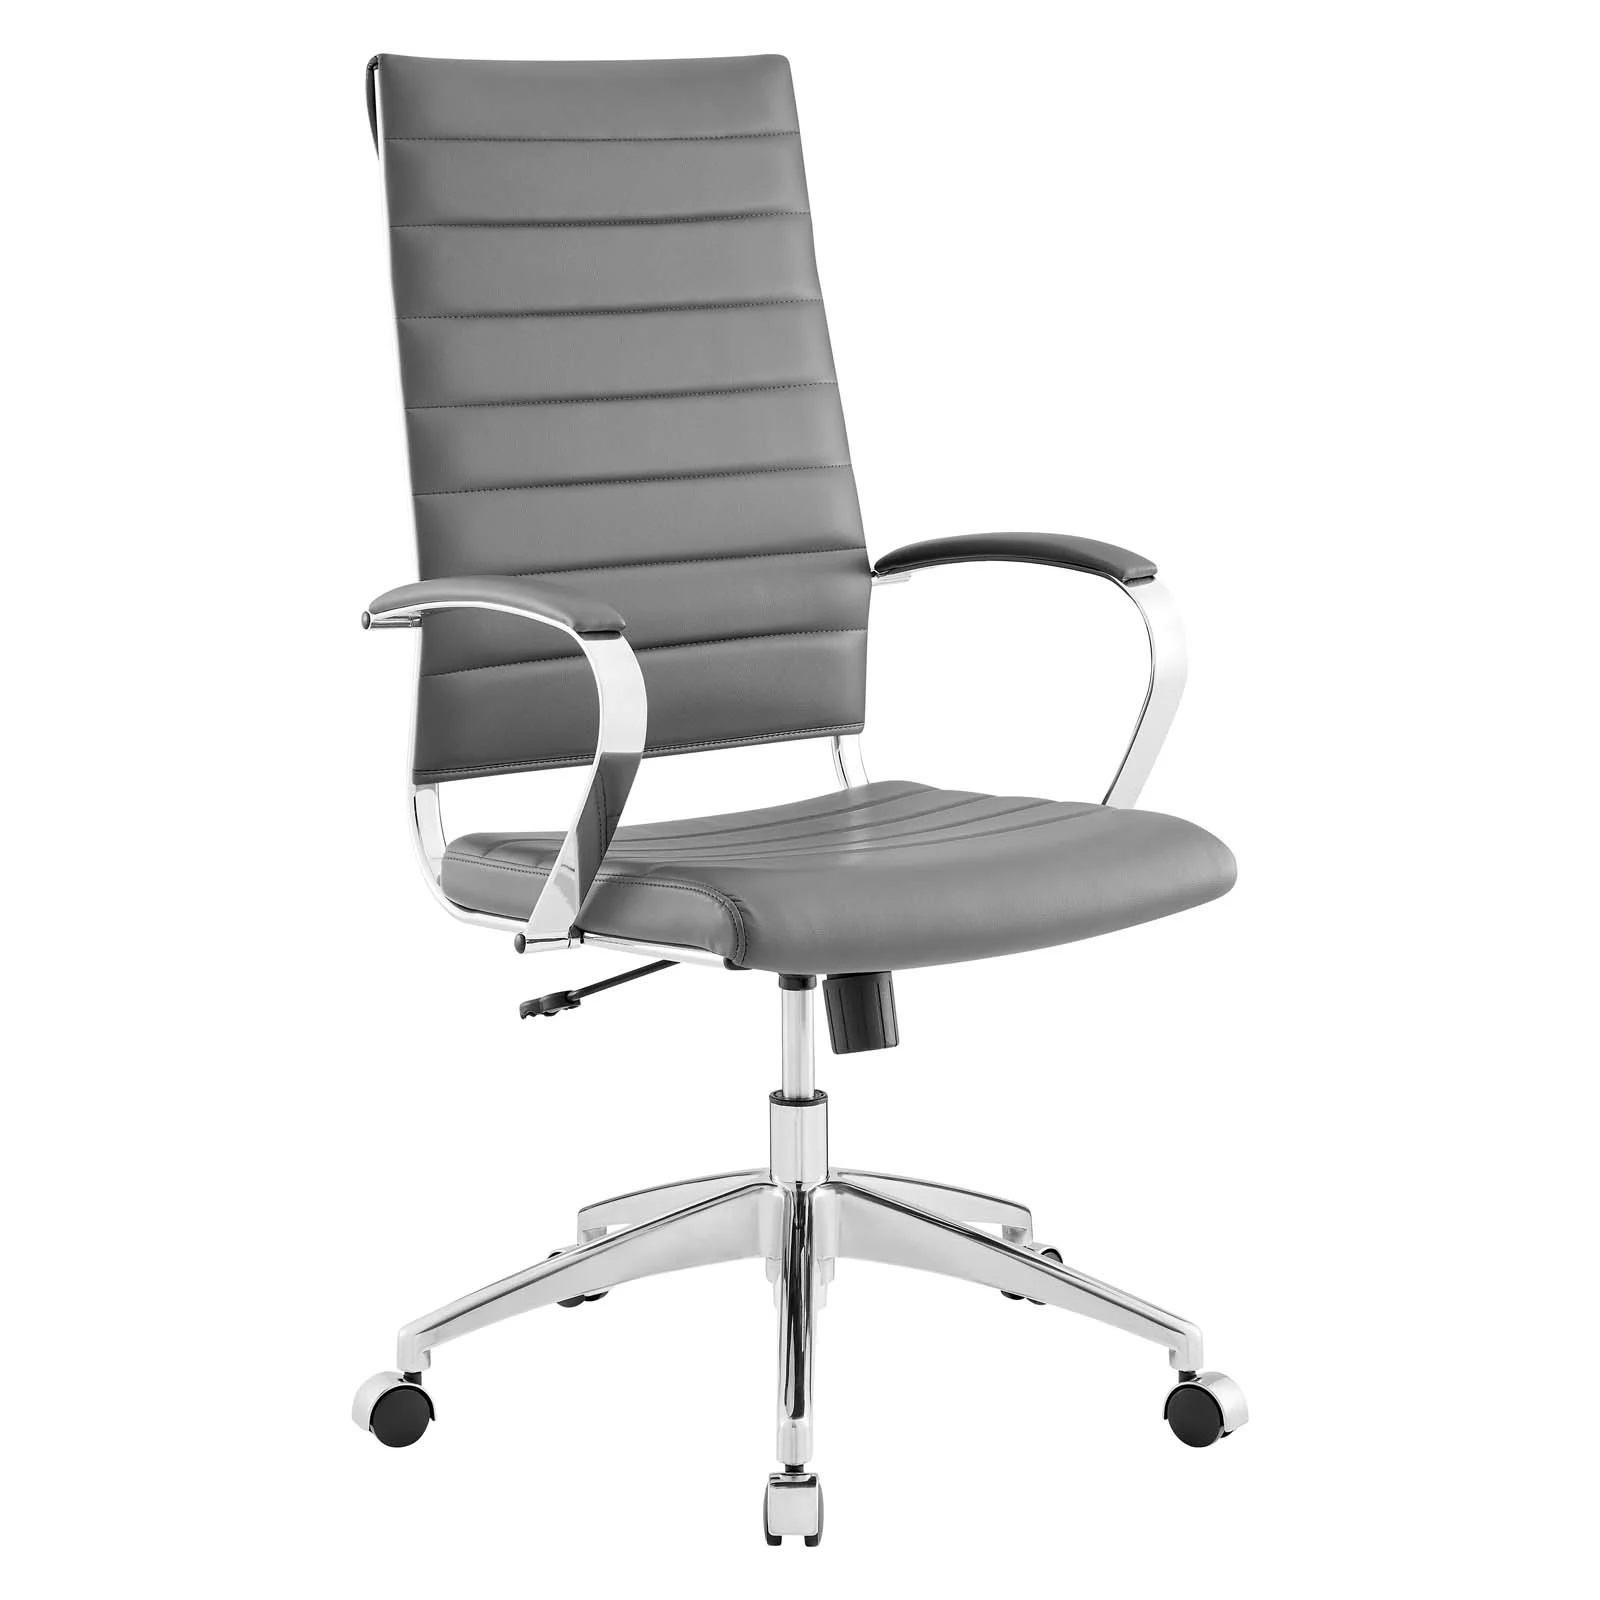 Highback Office Chair in Gray